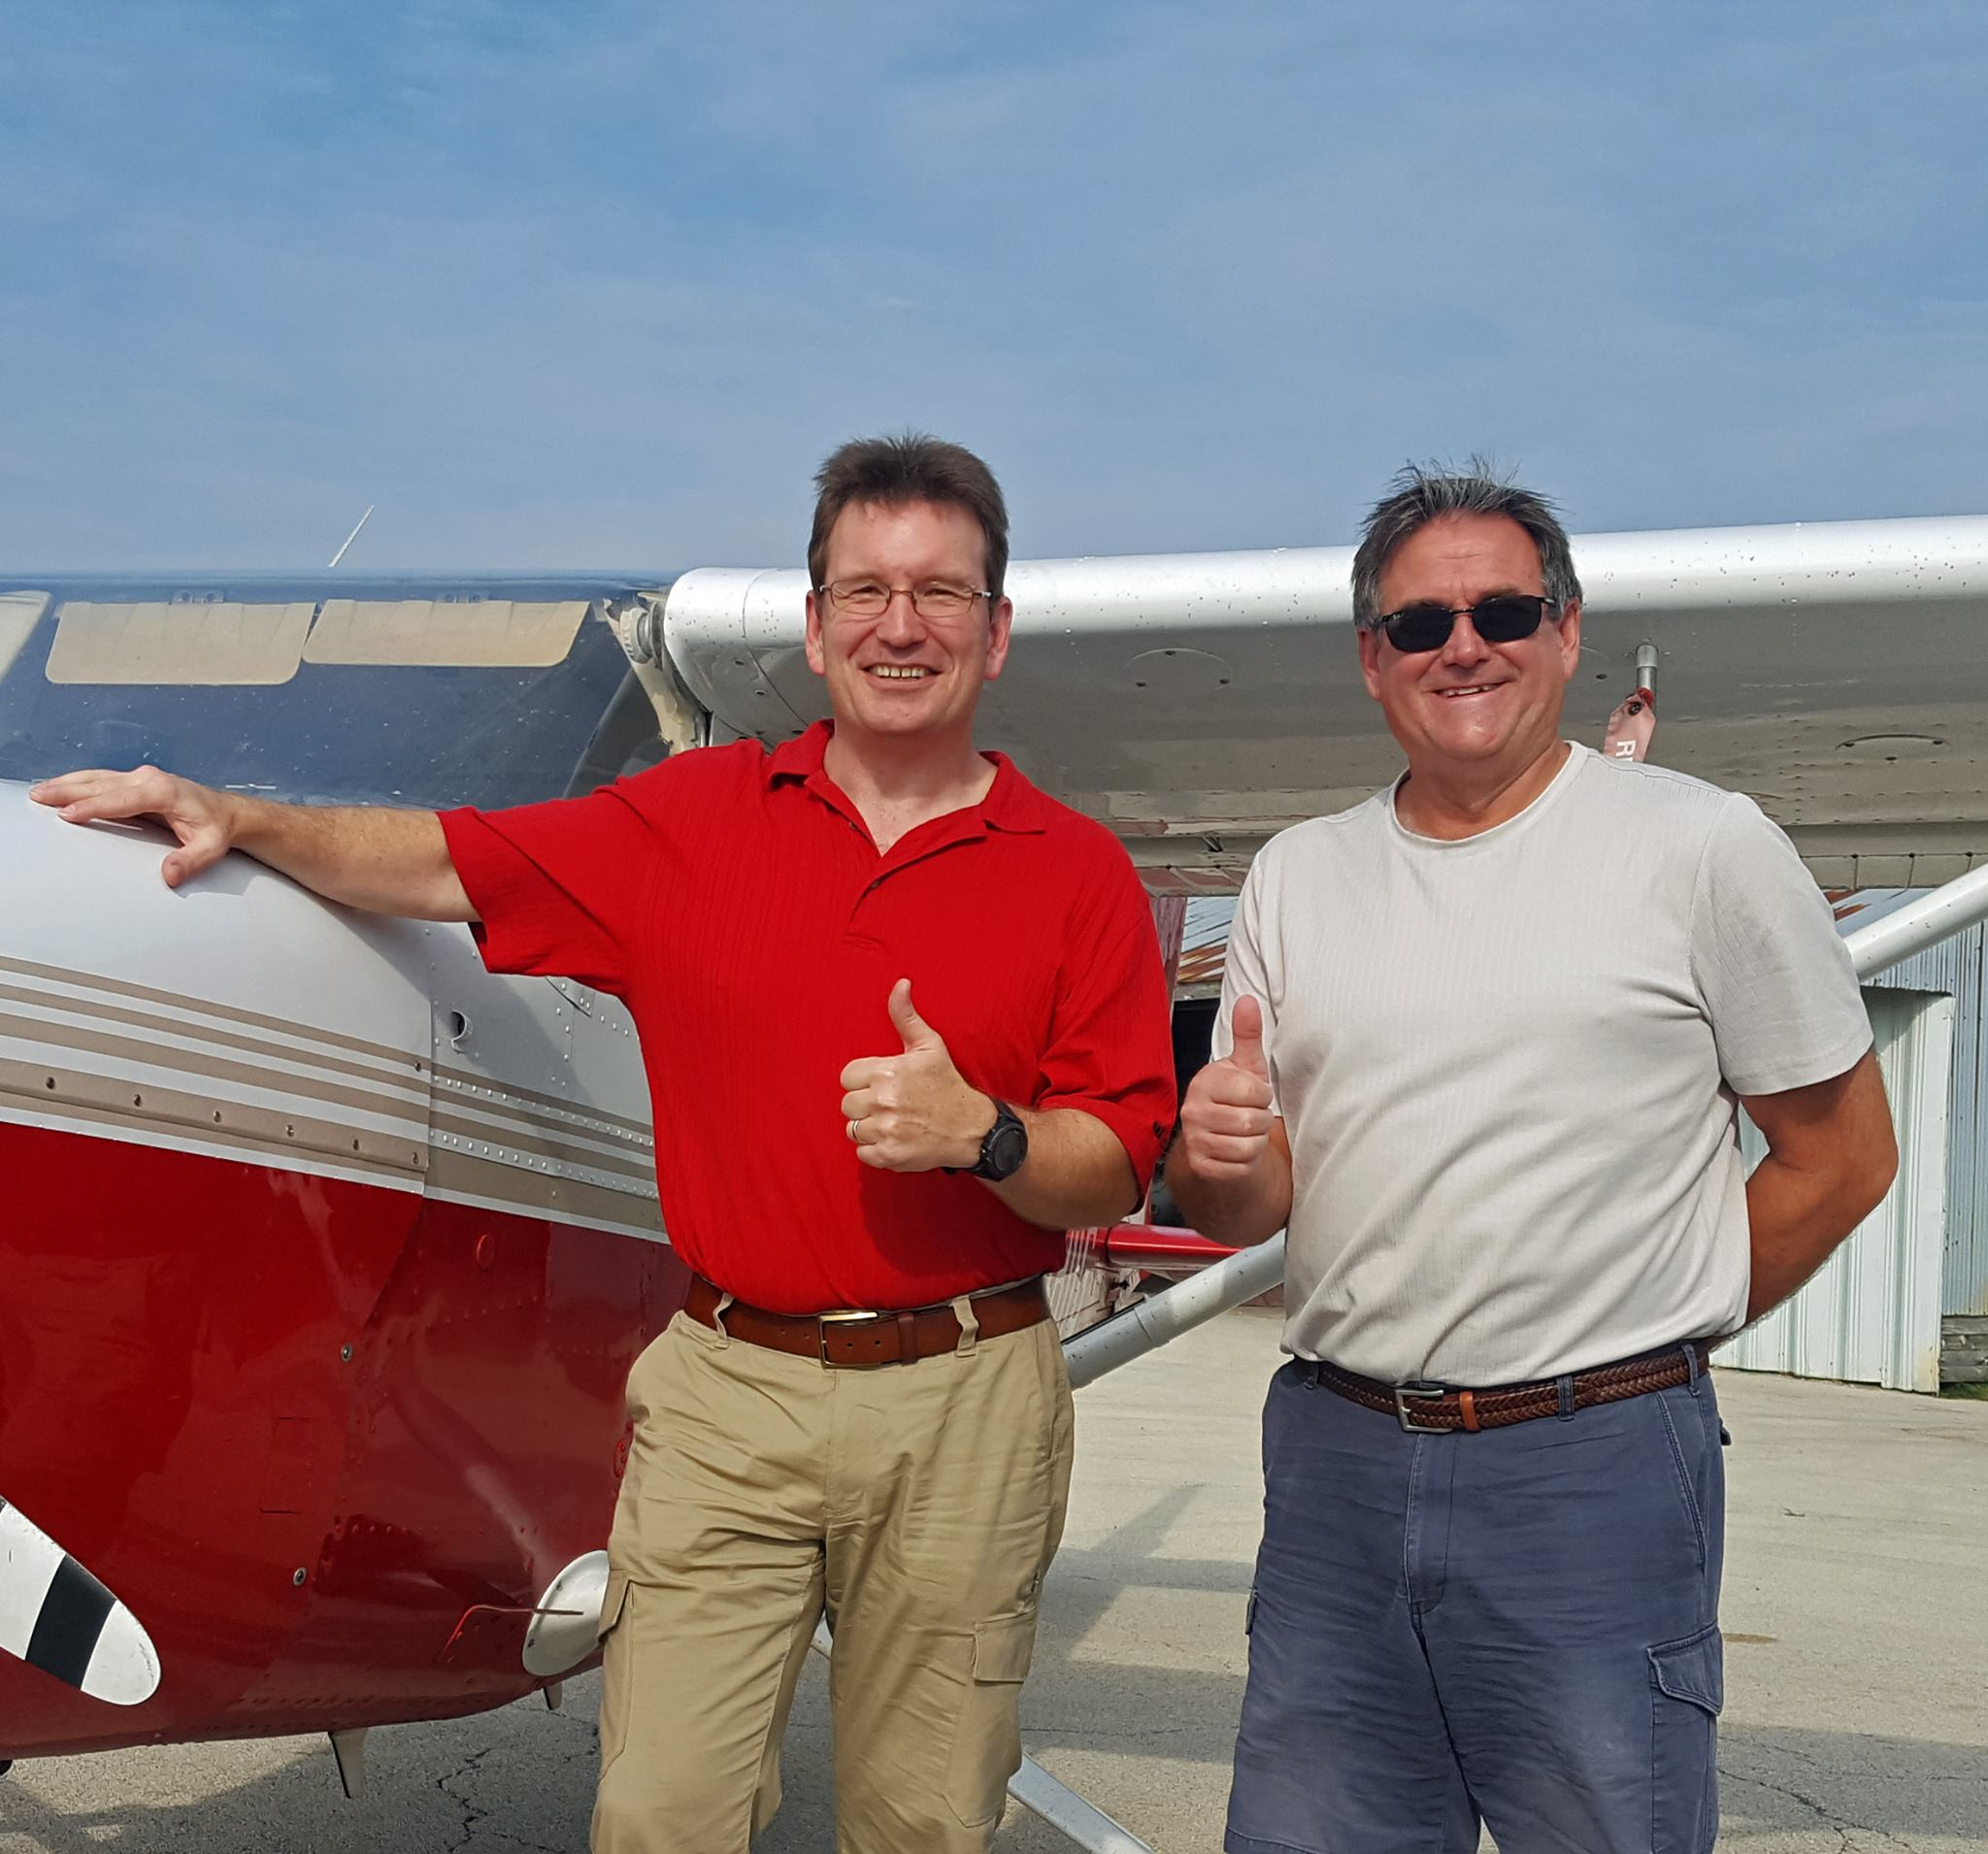 markus-smith-poplar-grove-airport-pilot-flight-lessons